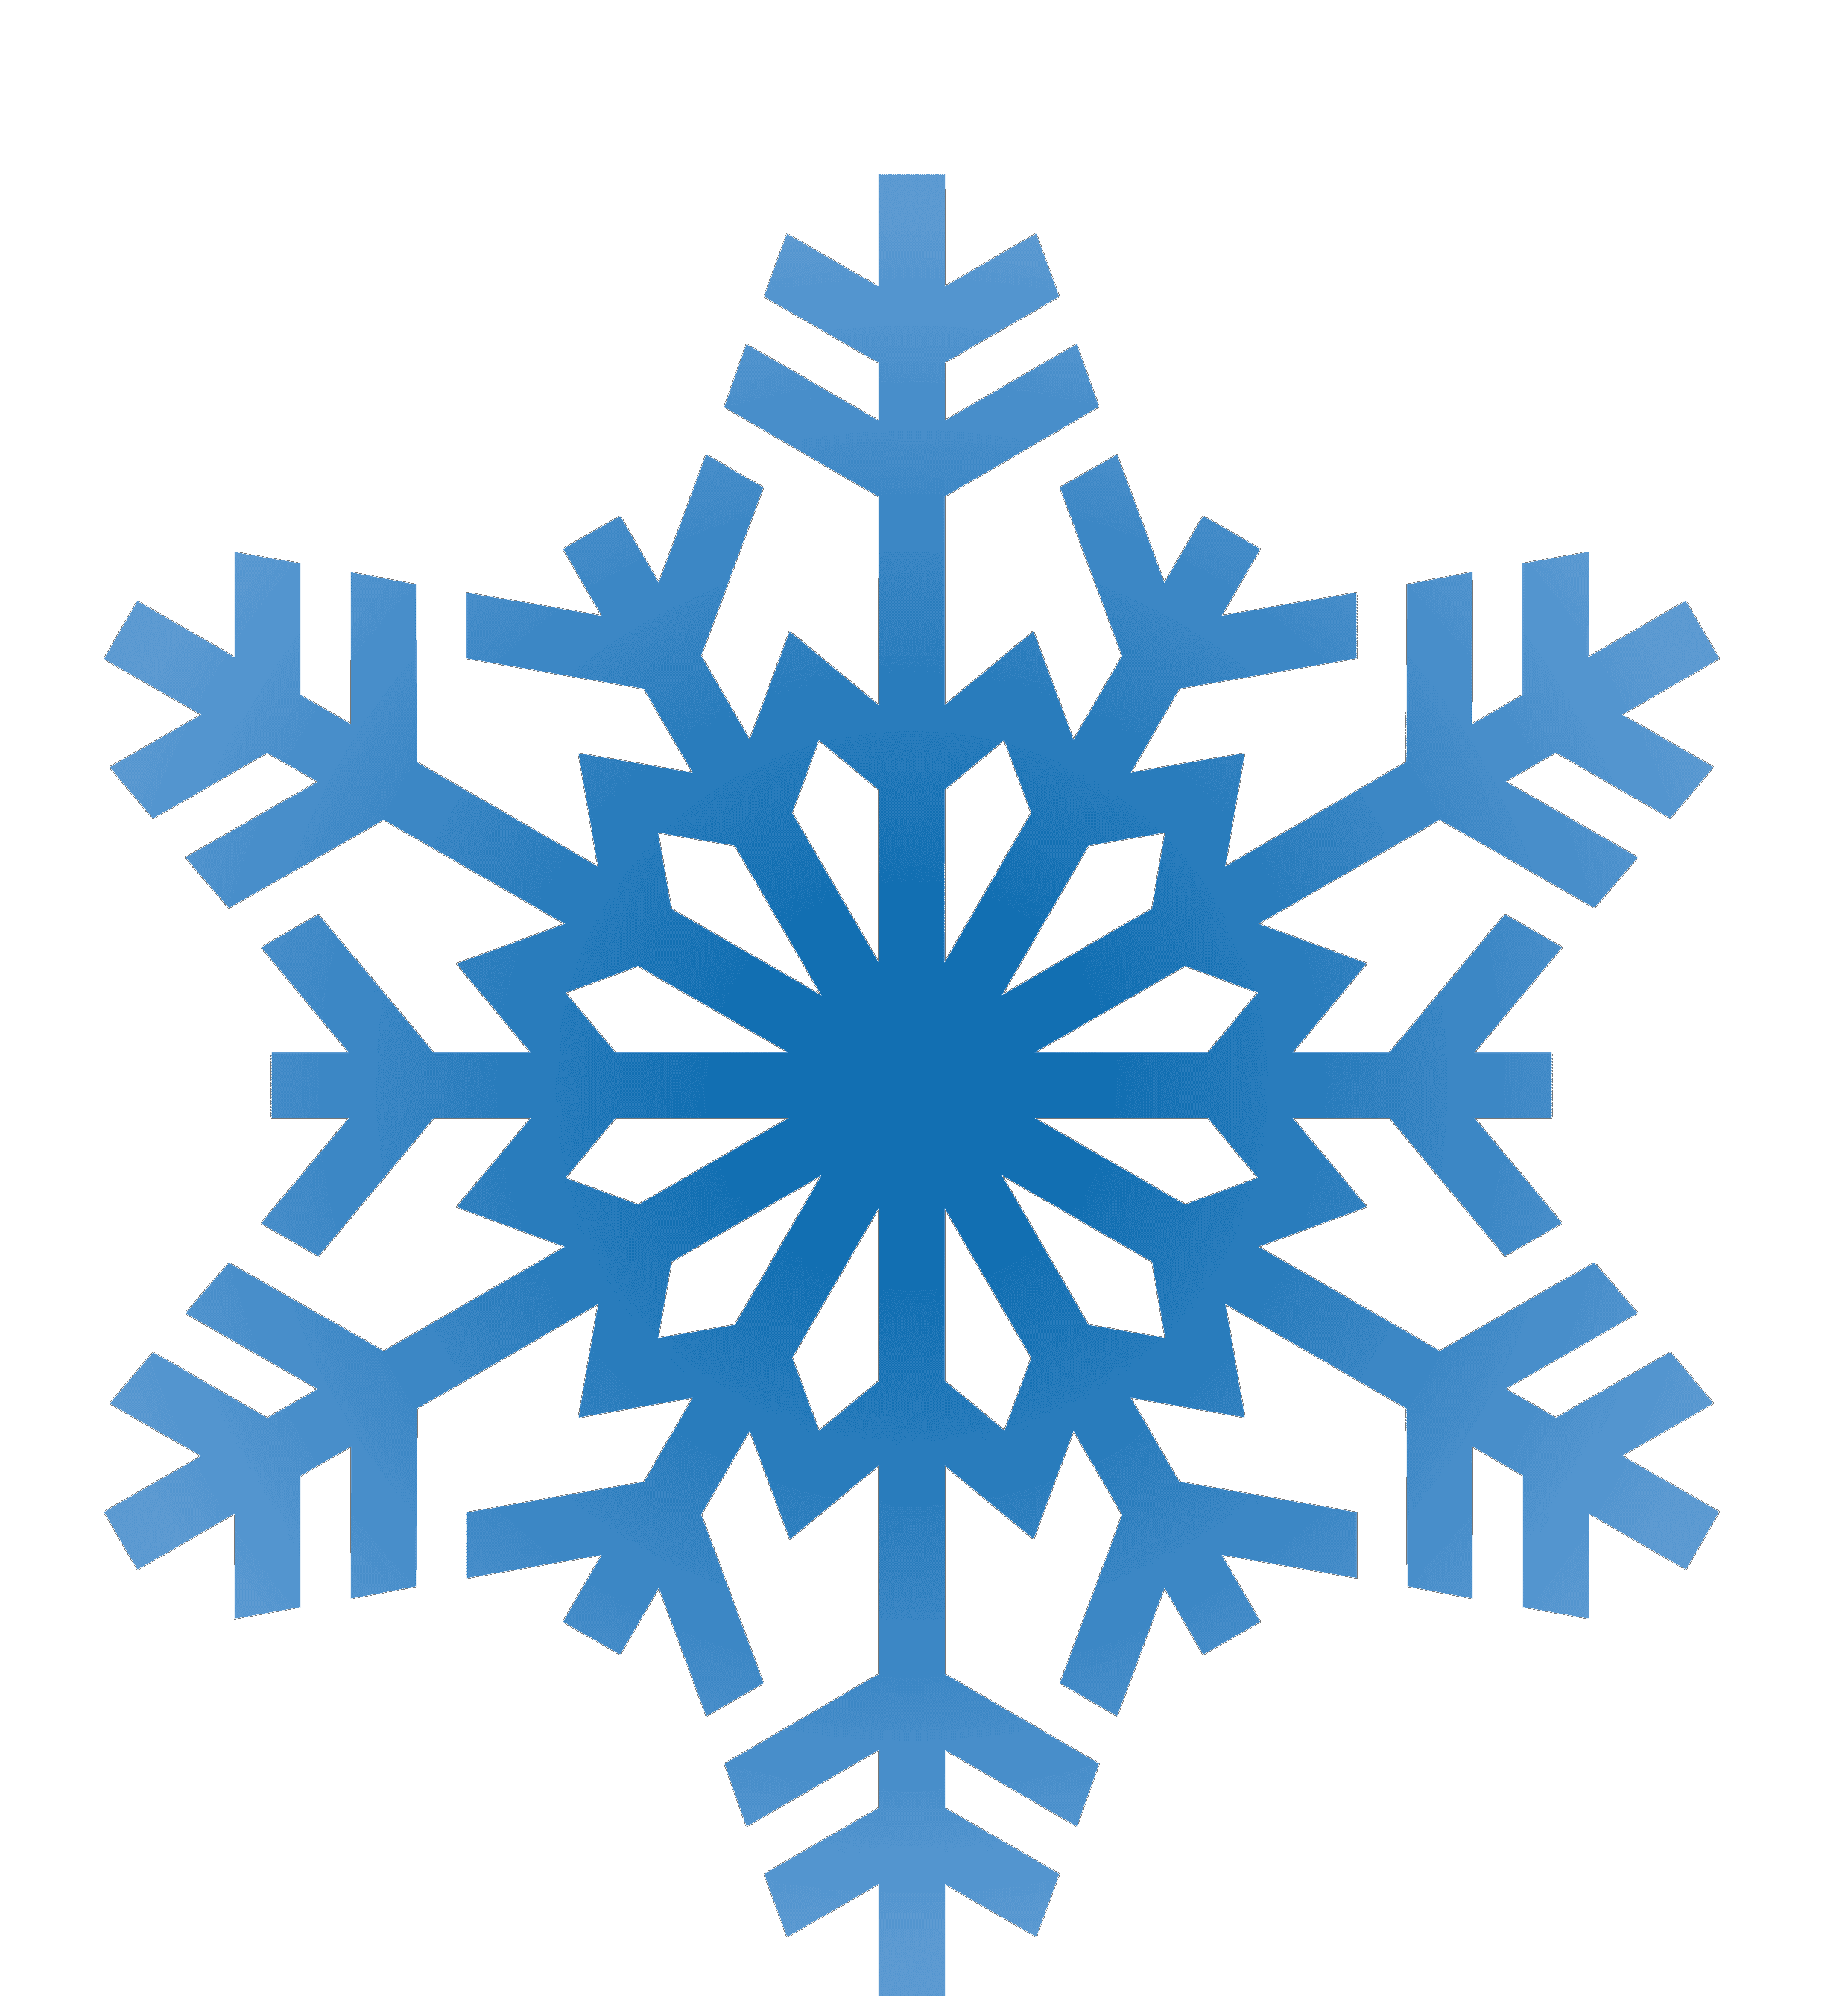 3d snowflake clipart graphic library Snowflake Logos graphic library